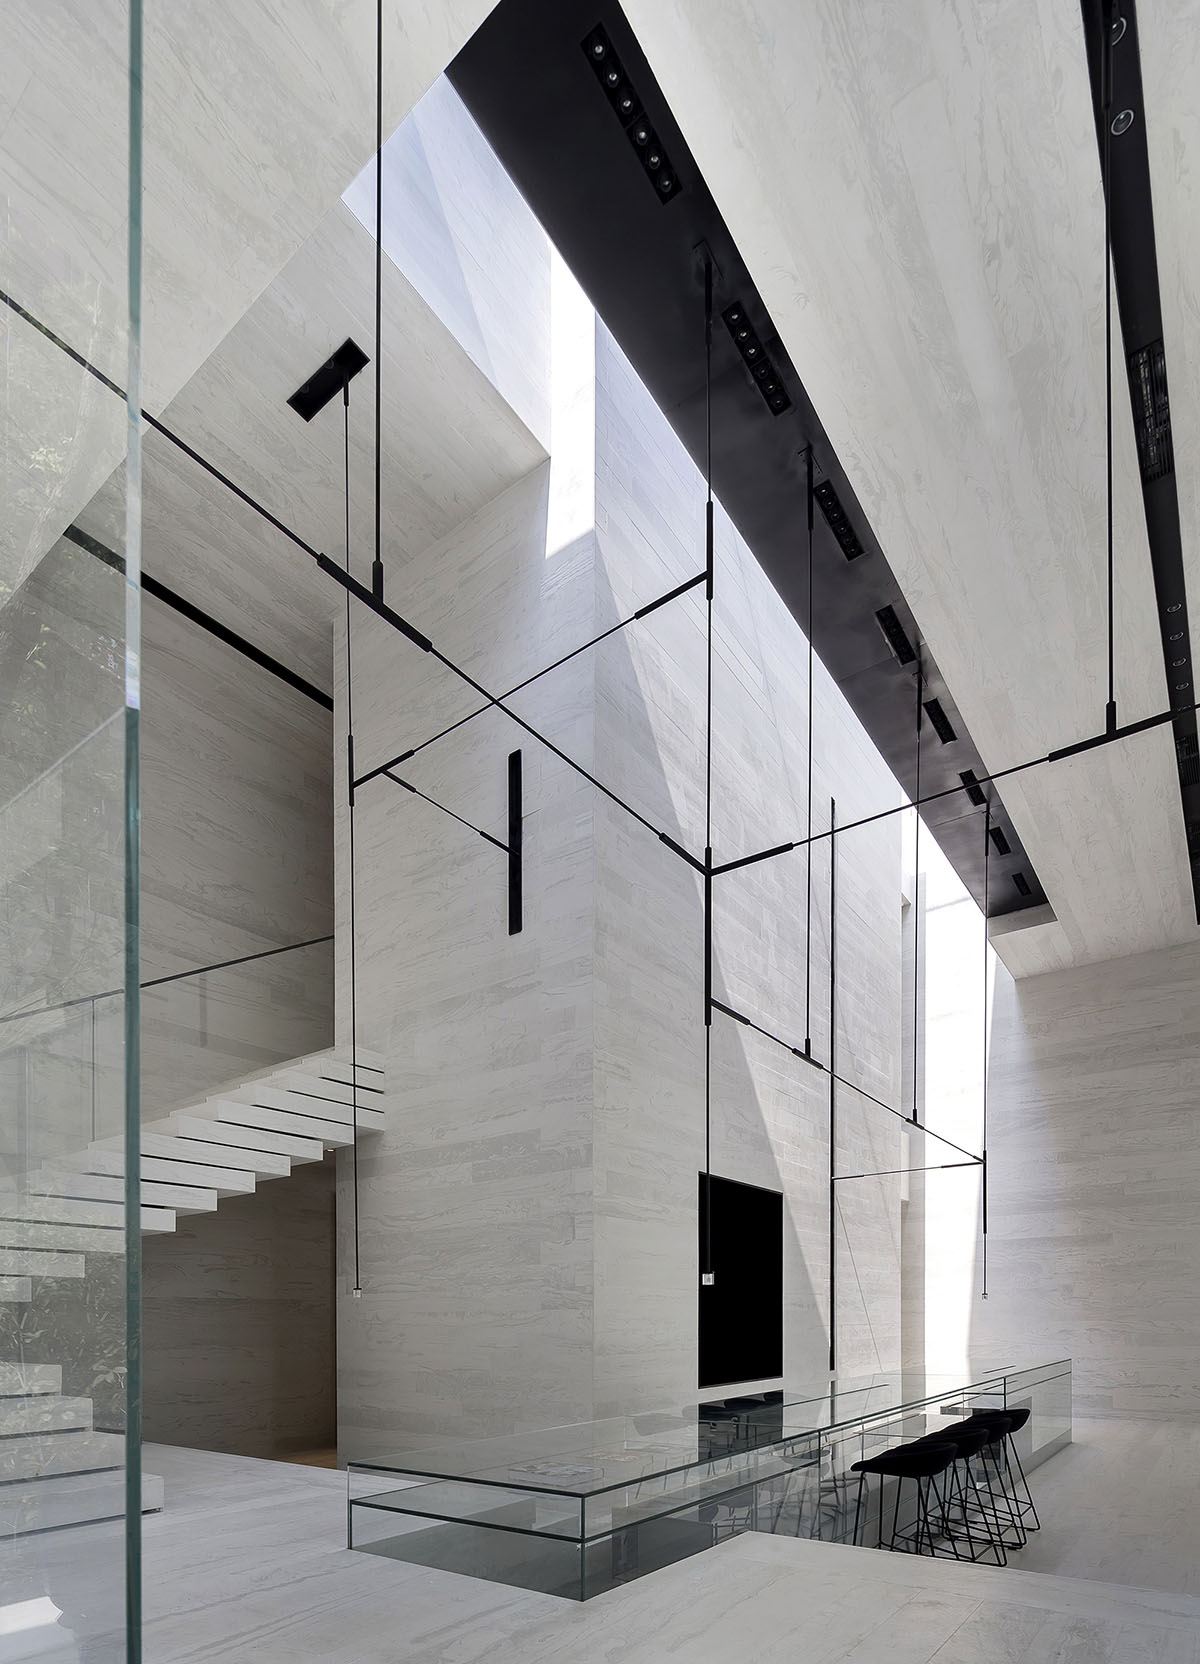 Luxury gym in china embraces sleek and minimal design curbed a black metal light fixture made of connected horizontal and vertical tubes hangs down from the ceiling dailygadgetfo Choice Image